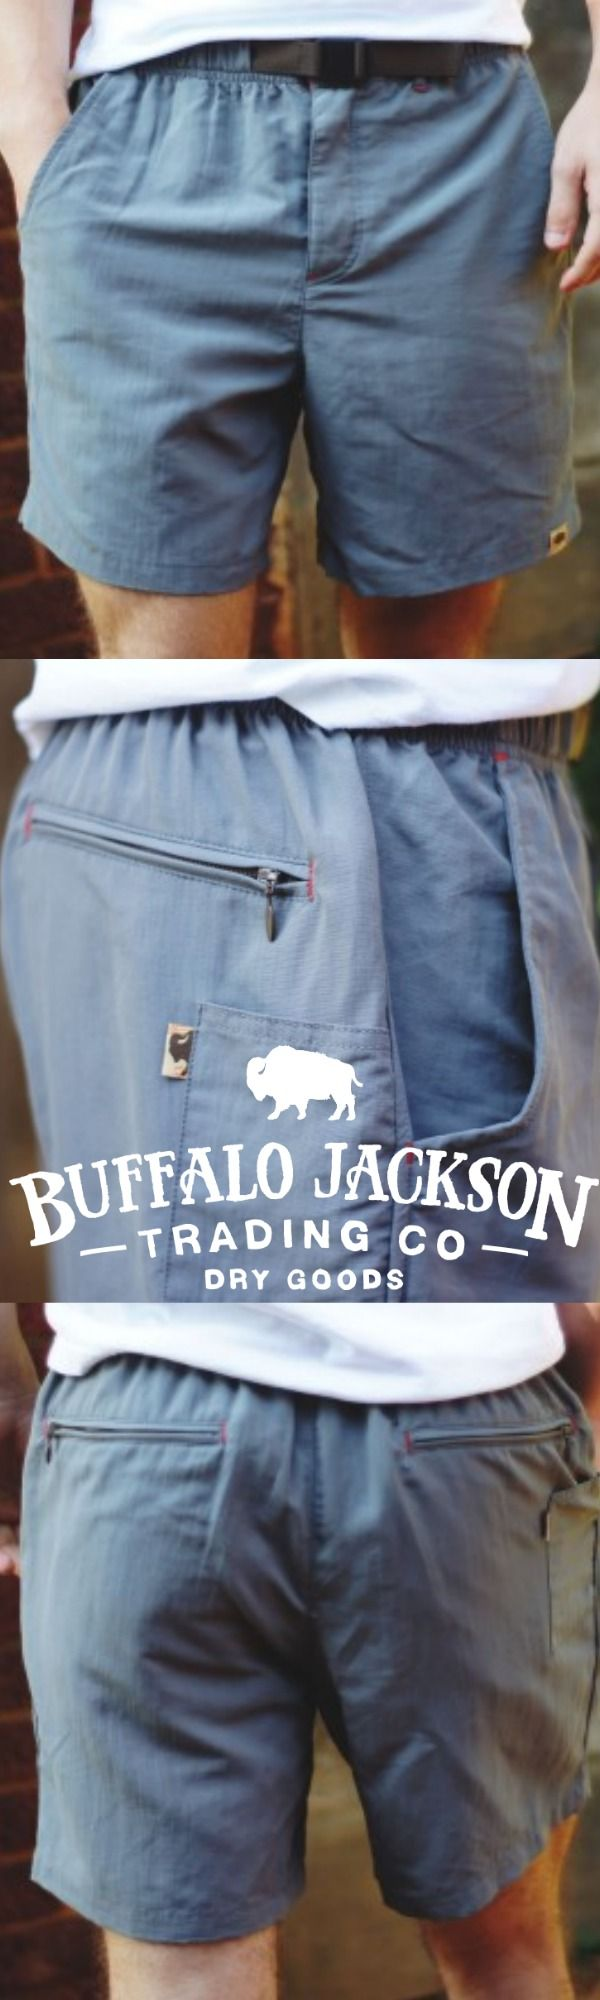 Riverdale Men's Outdoor Belted Shorts by Buffalo Jackson Trading Co. The 100% quick dry nylon is perfect for adventures on land or water. Also available in red or blue. (Shown here in gray.)